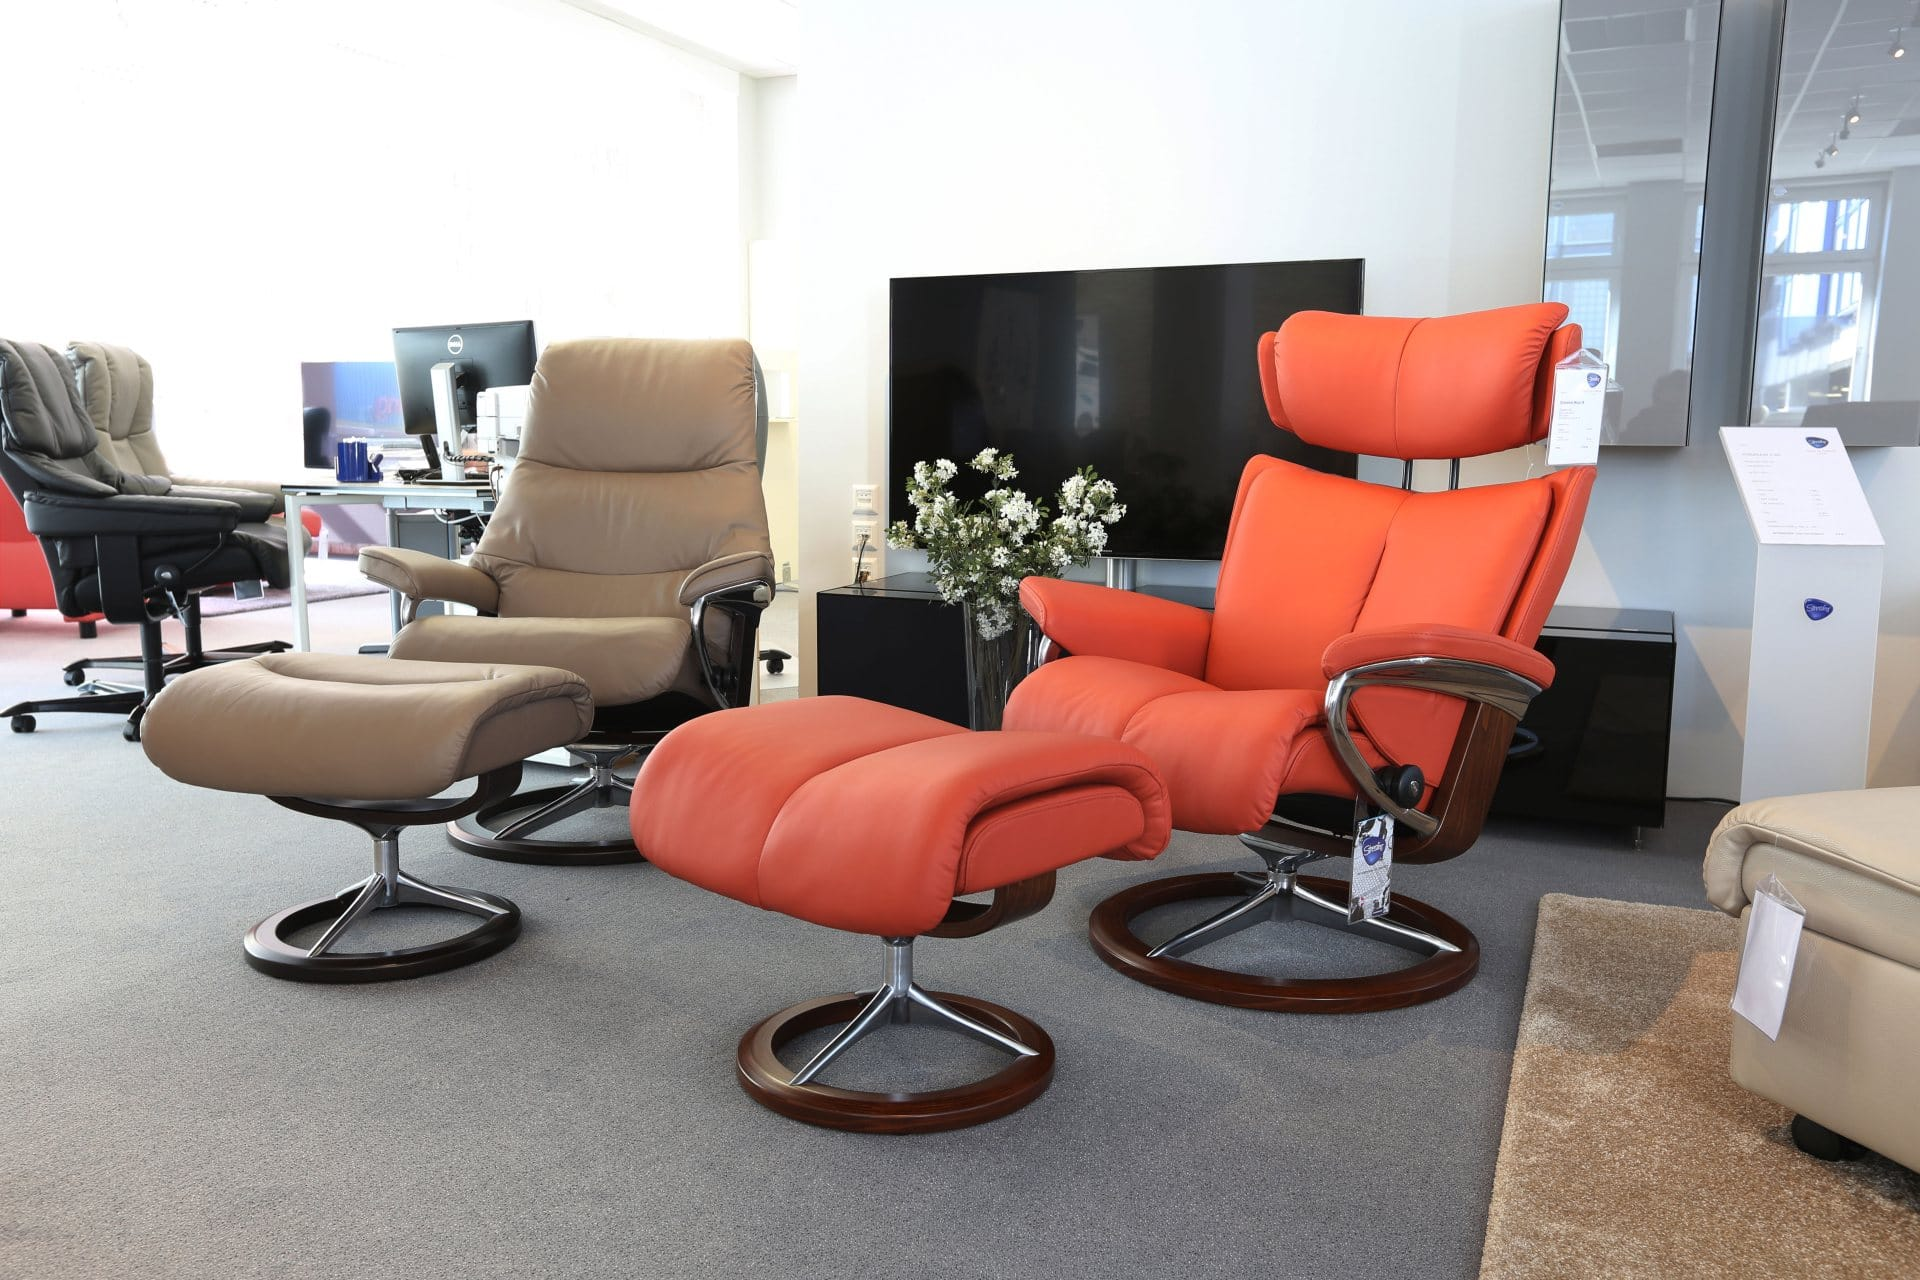 Stressless Sessel Berlin Stressless Store House Of Comfort Berlin Spandau